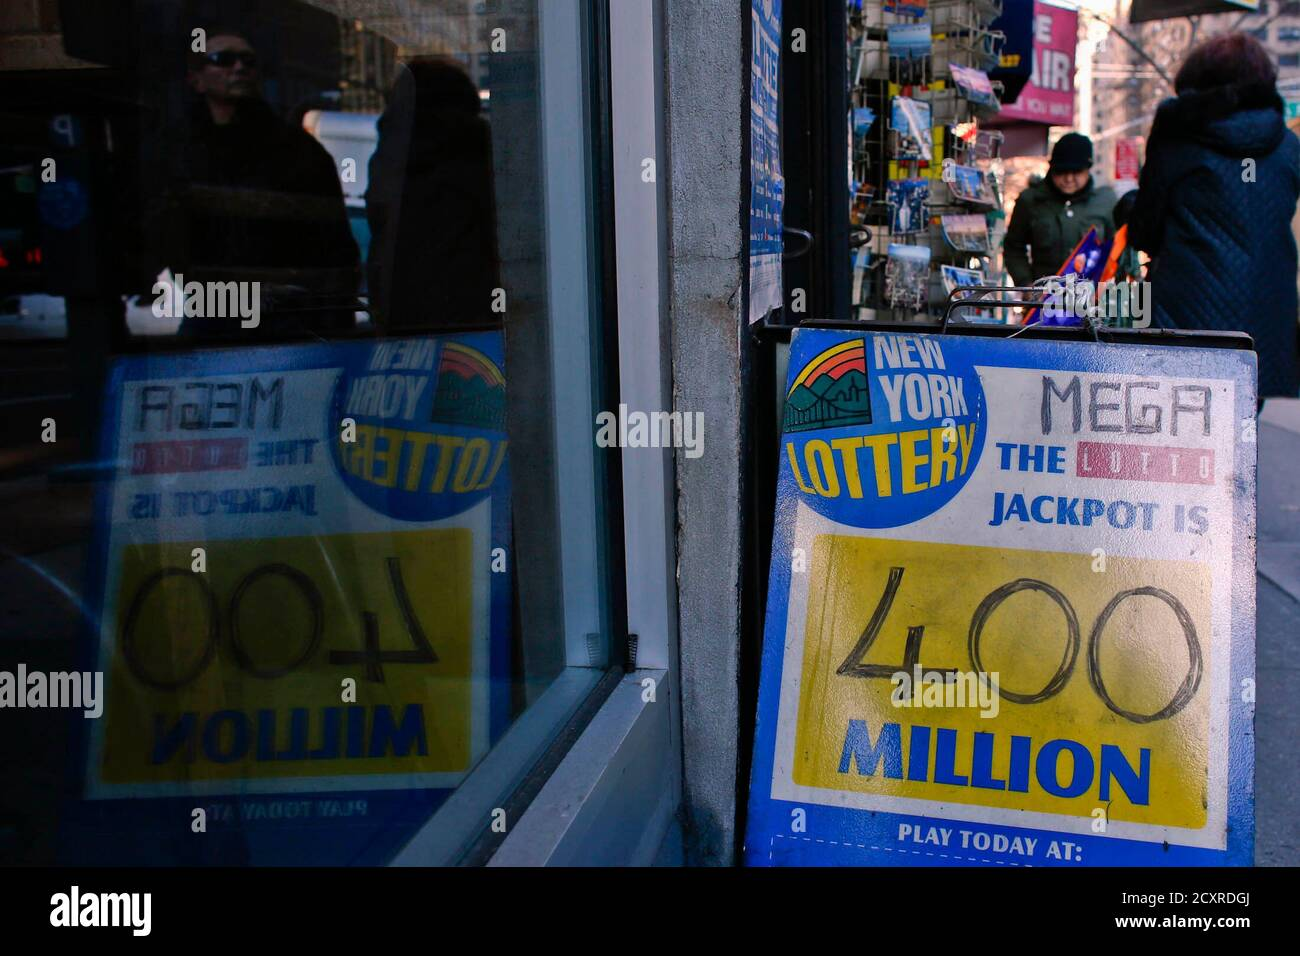 People Walk Next To A Mega Millions Poster After The Lottery Grand Prize Rose To 400